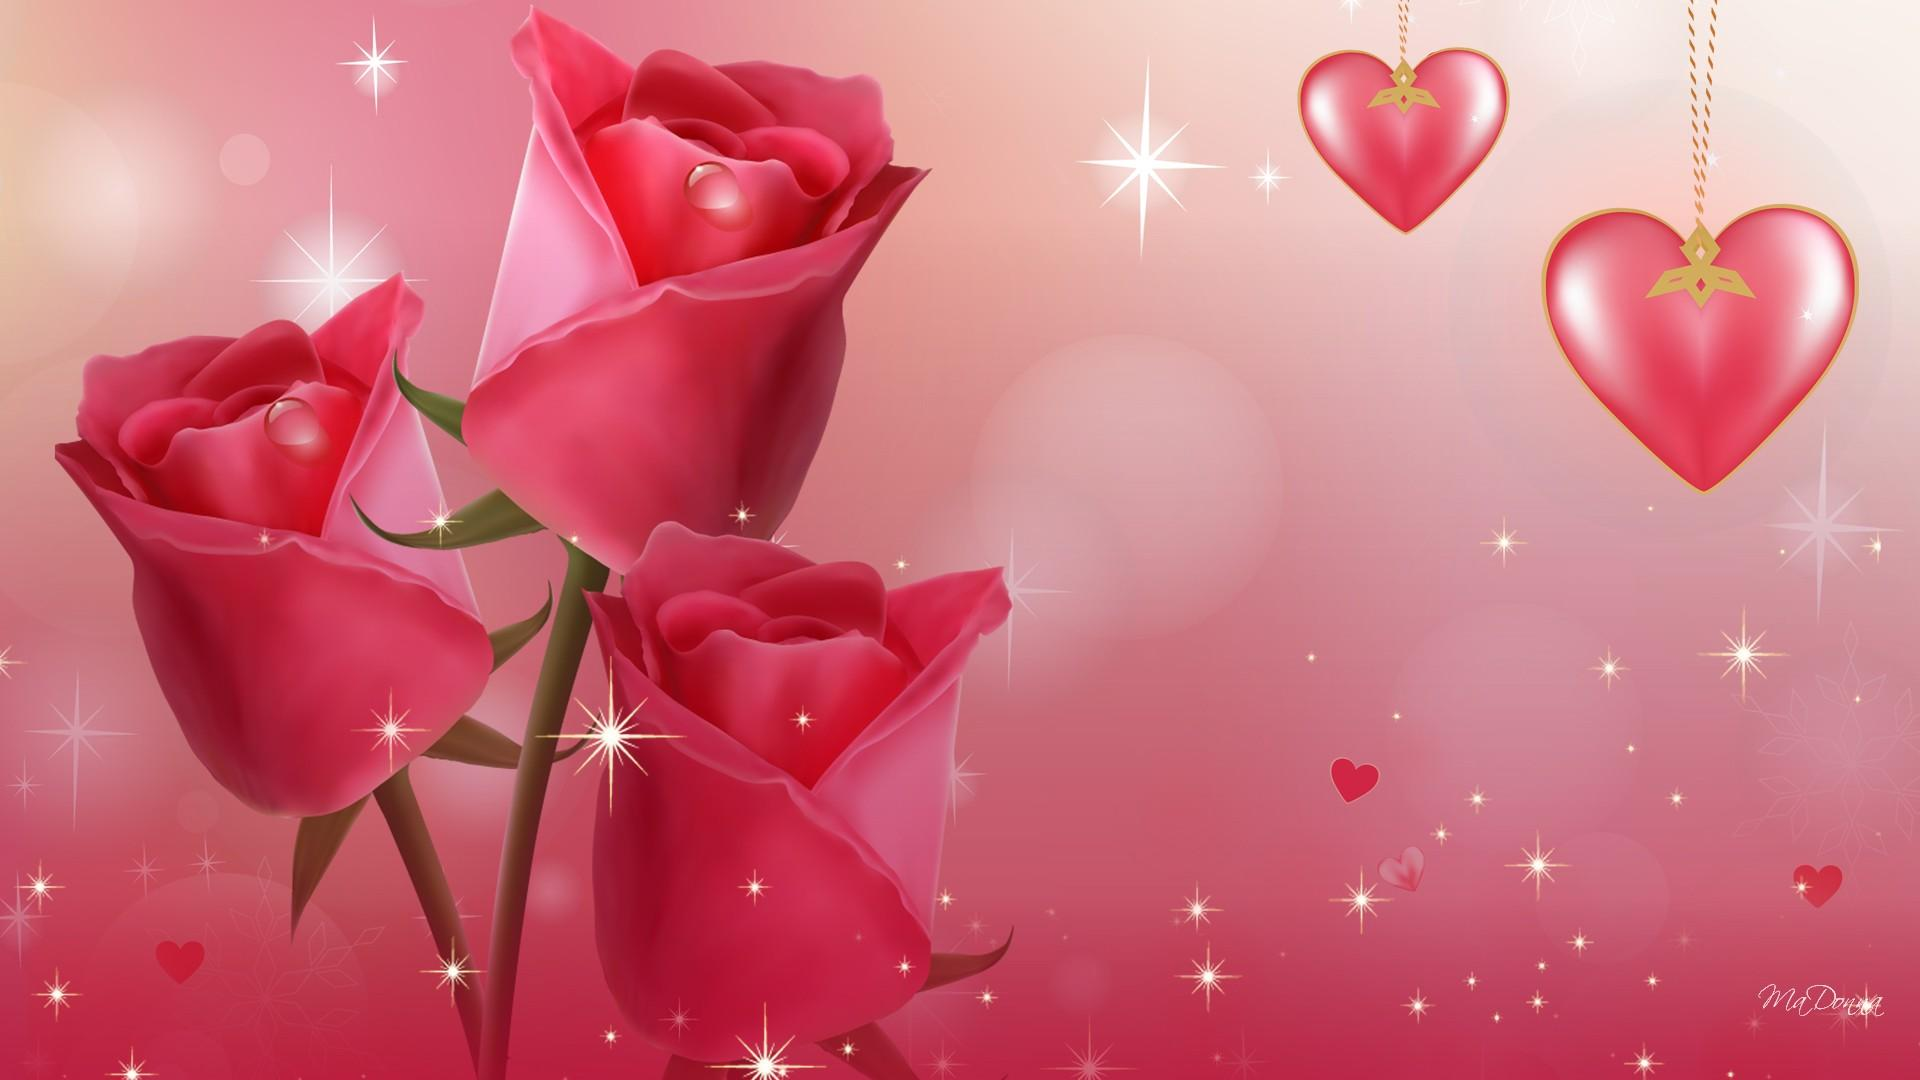 Love Hd Wallpaper For J7 : Beautiful Love Wallpaper HD - WallpaperSafari